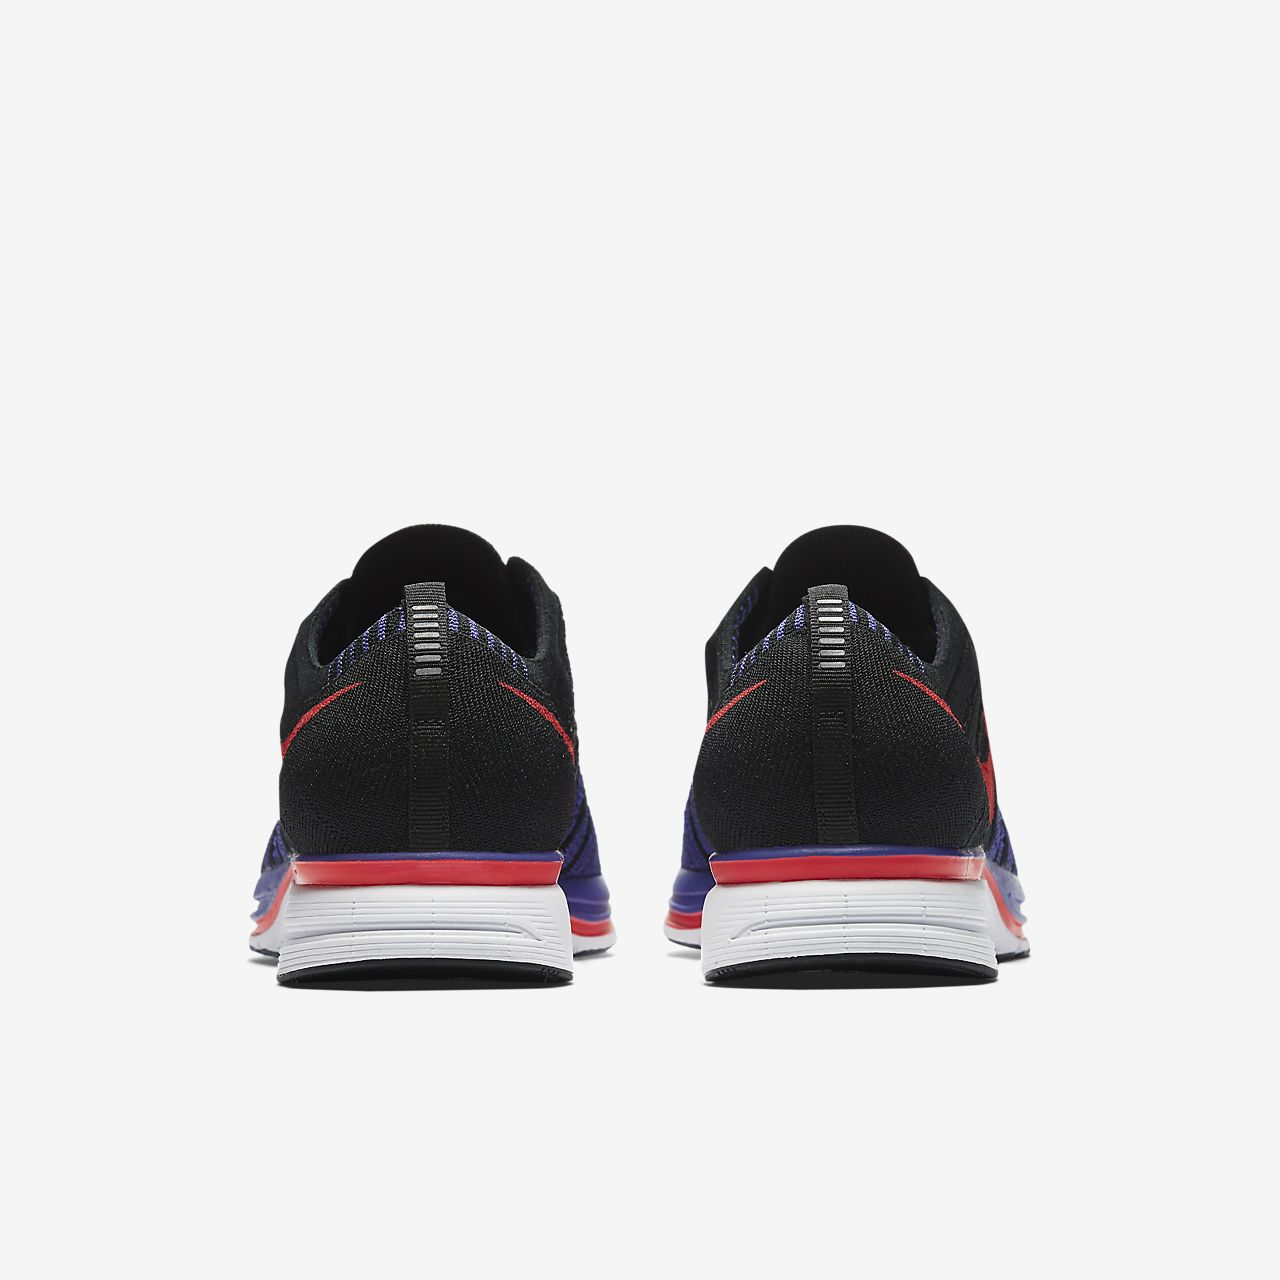 differently 4c4b8 2c748 ... Nike Flyknit Trainer Unisex-Schuh